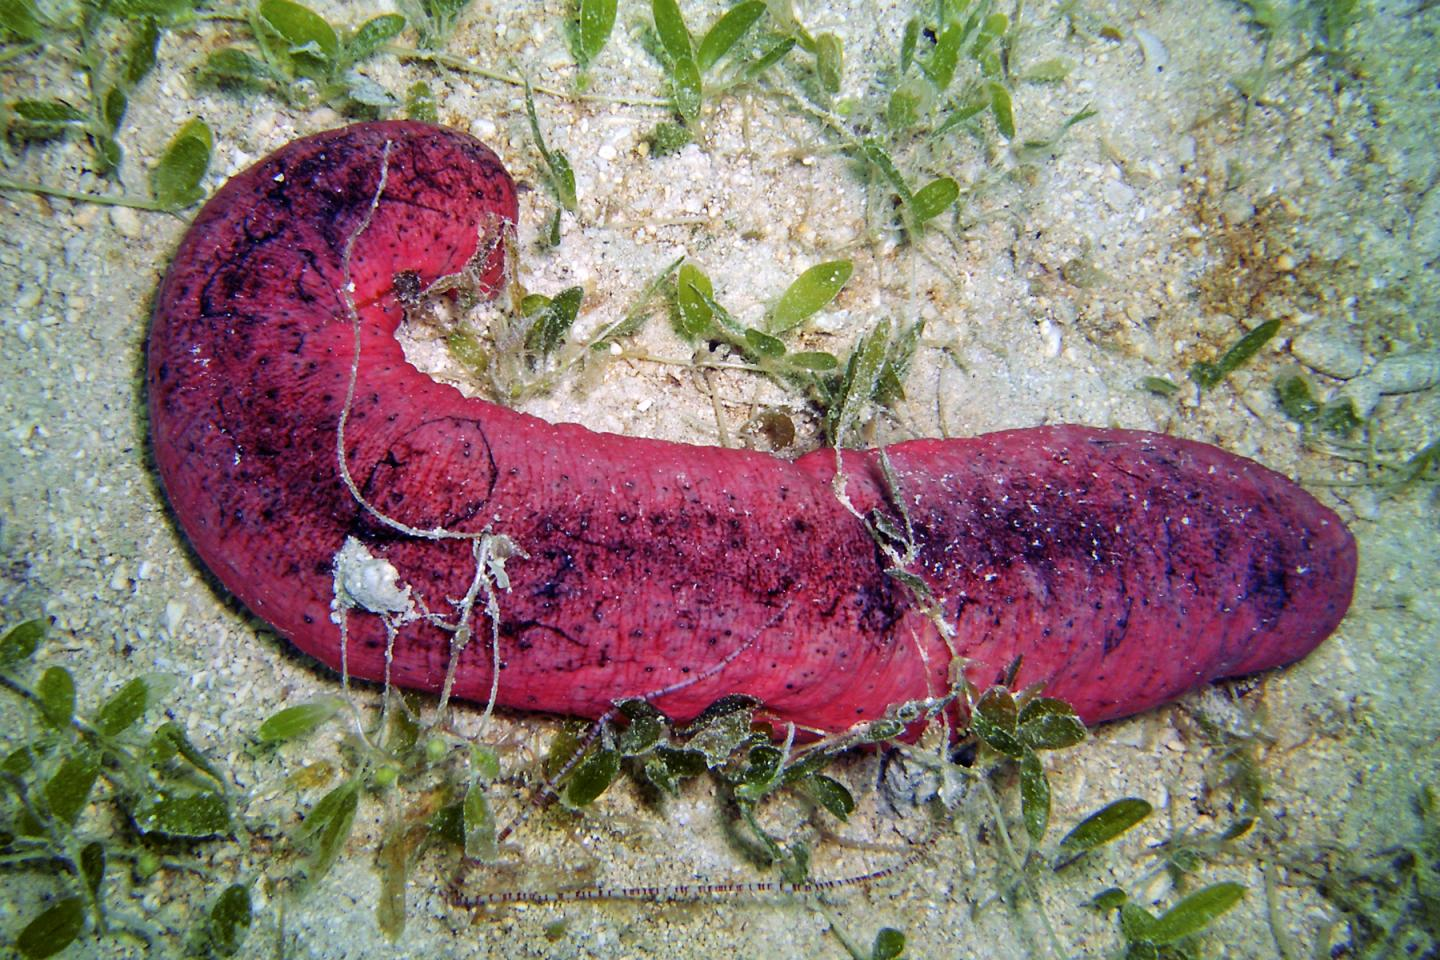 Sea cucumber hentai naked images